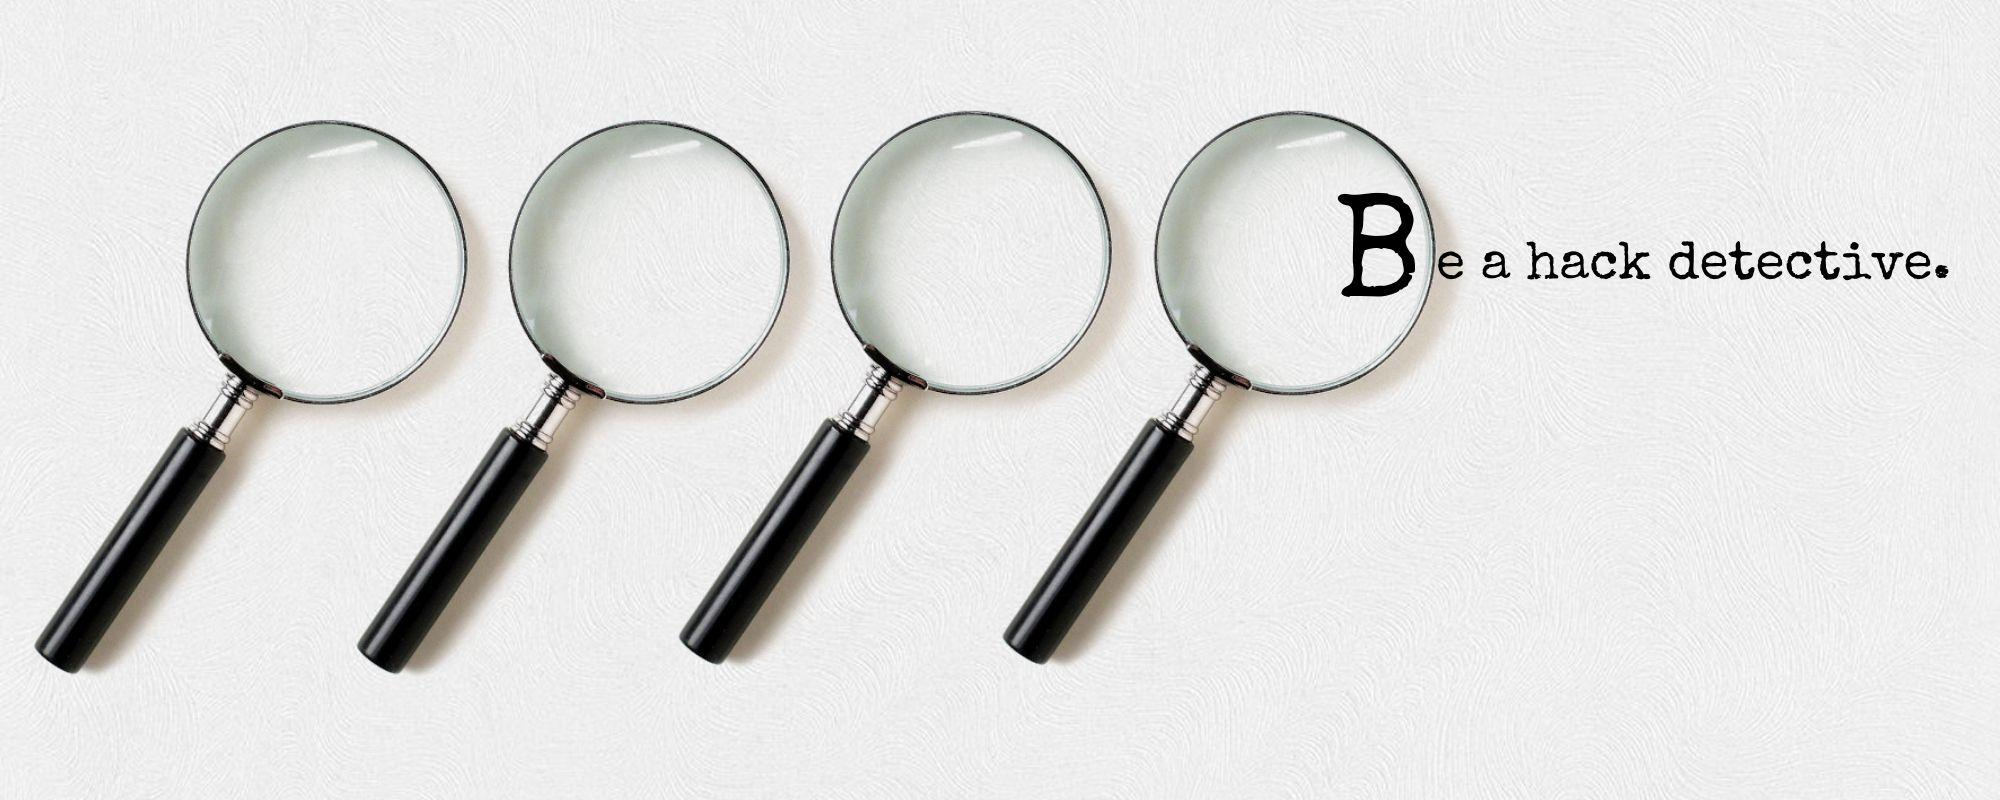 """Image of magnifying glasses with the text, """"Be a hack detective."""""""